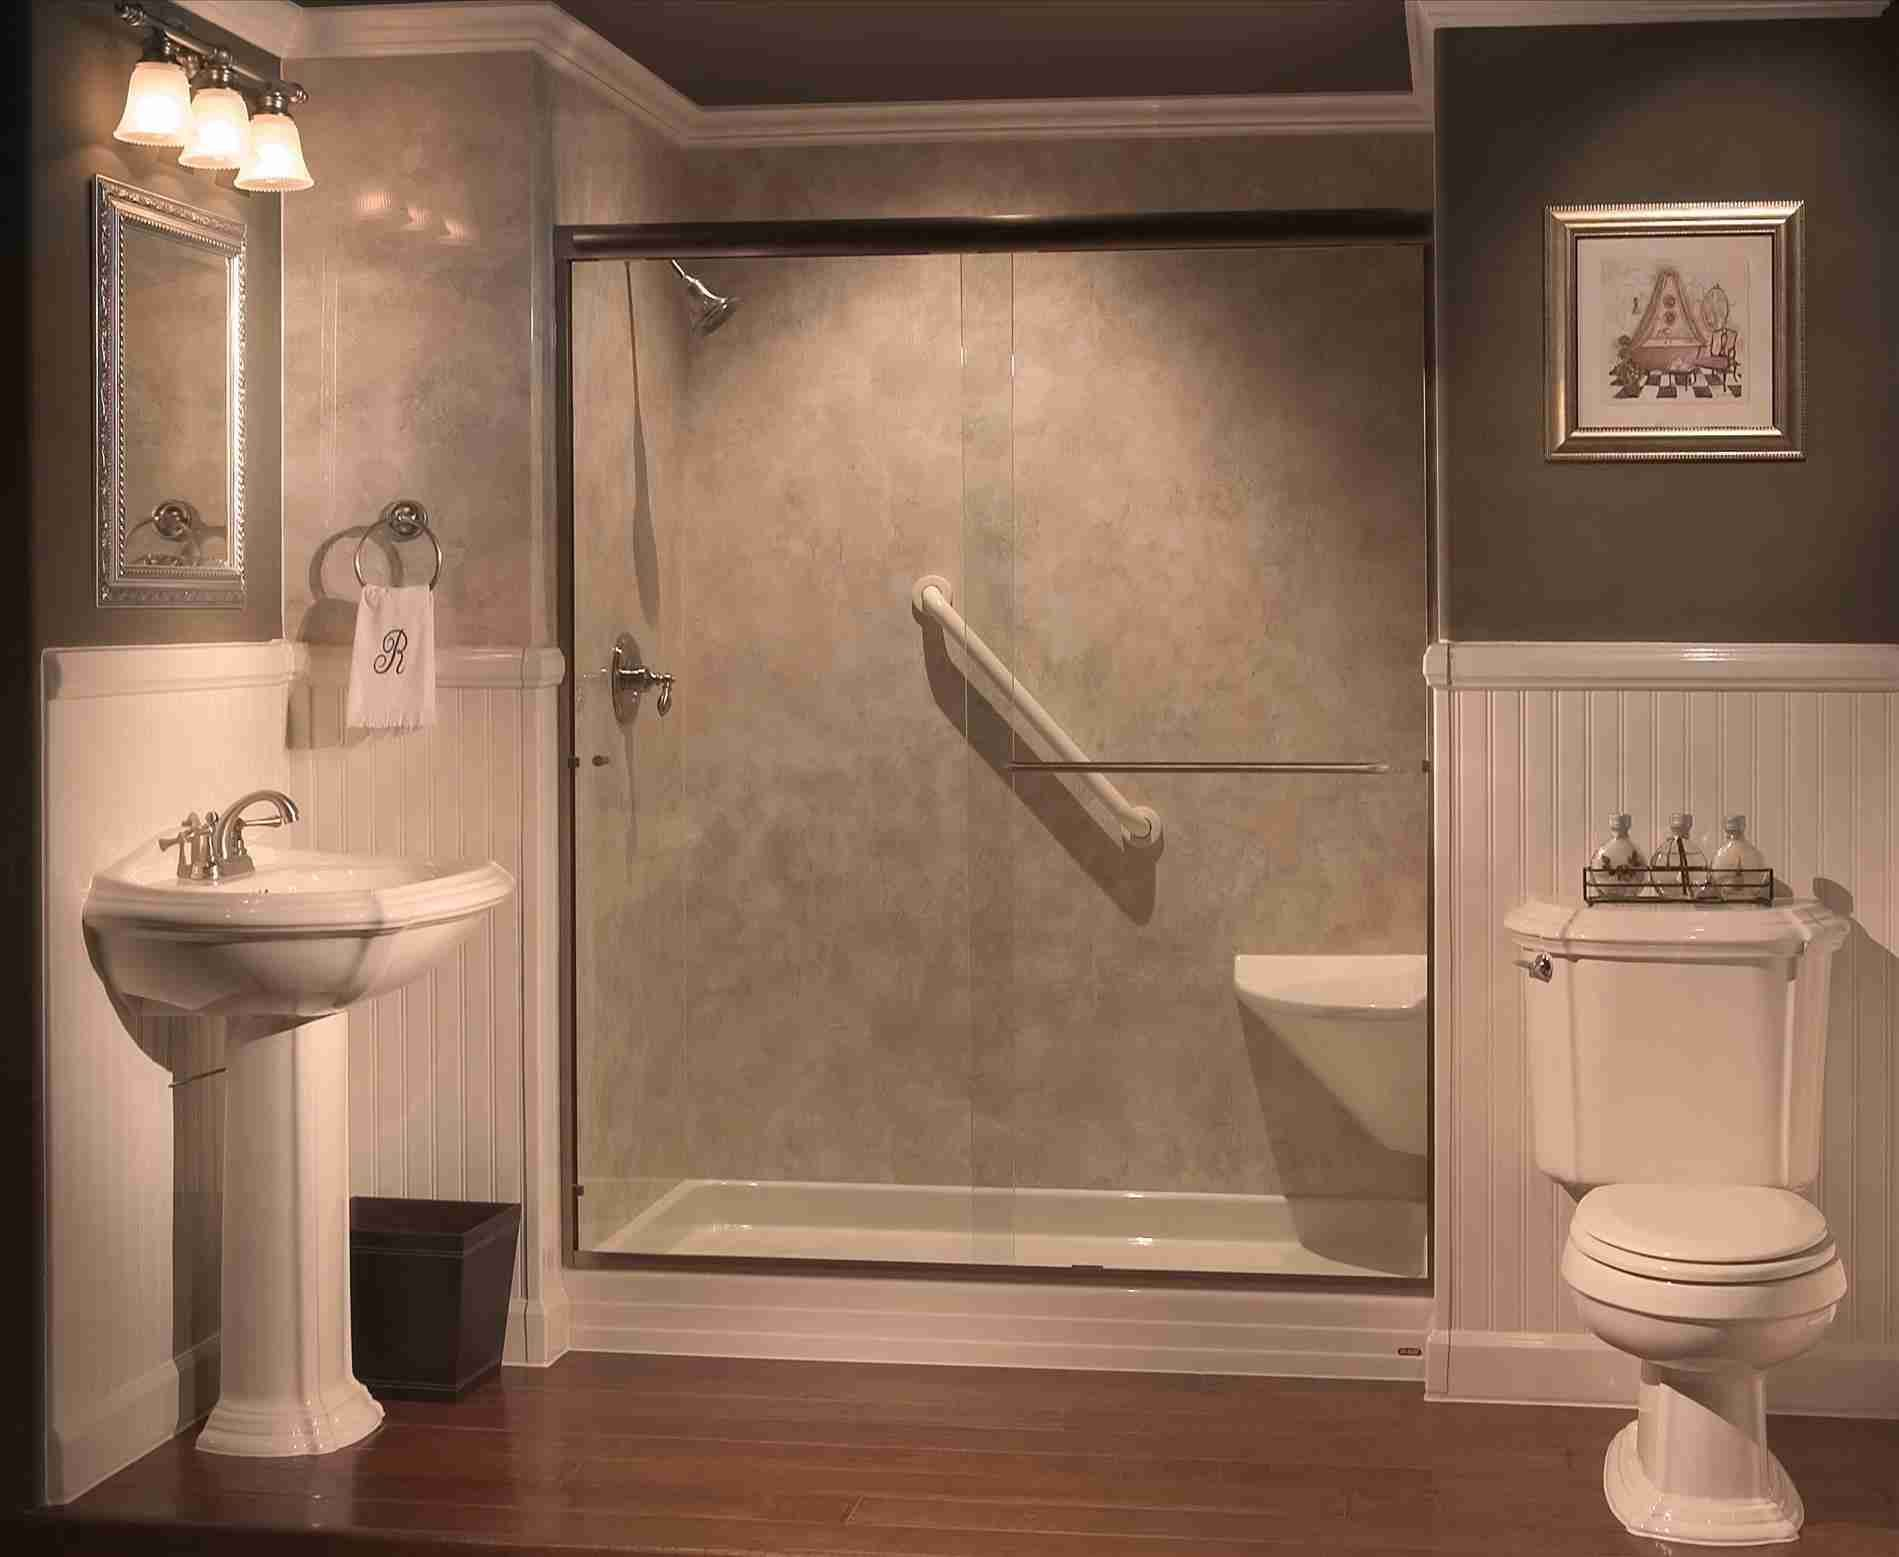 New post Trending-remove bathtub and replace with shower-Visit ...